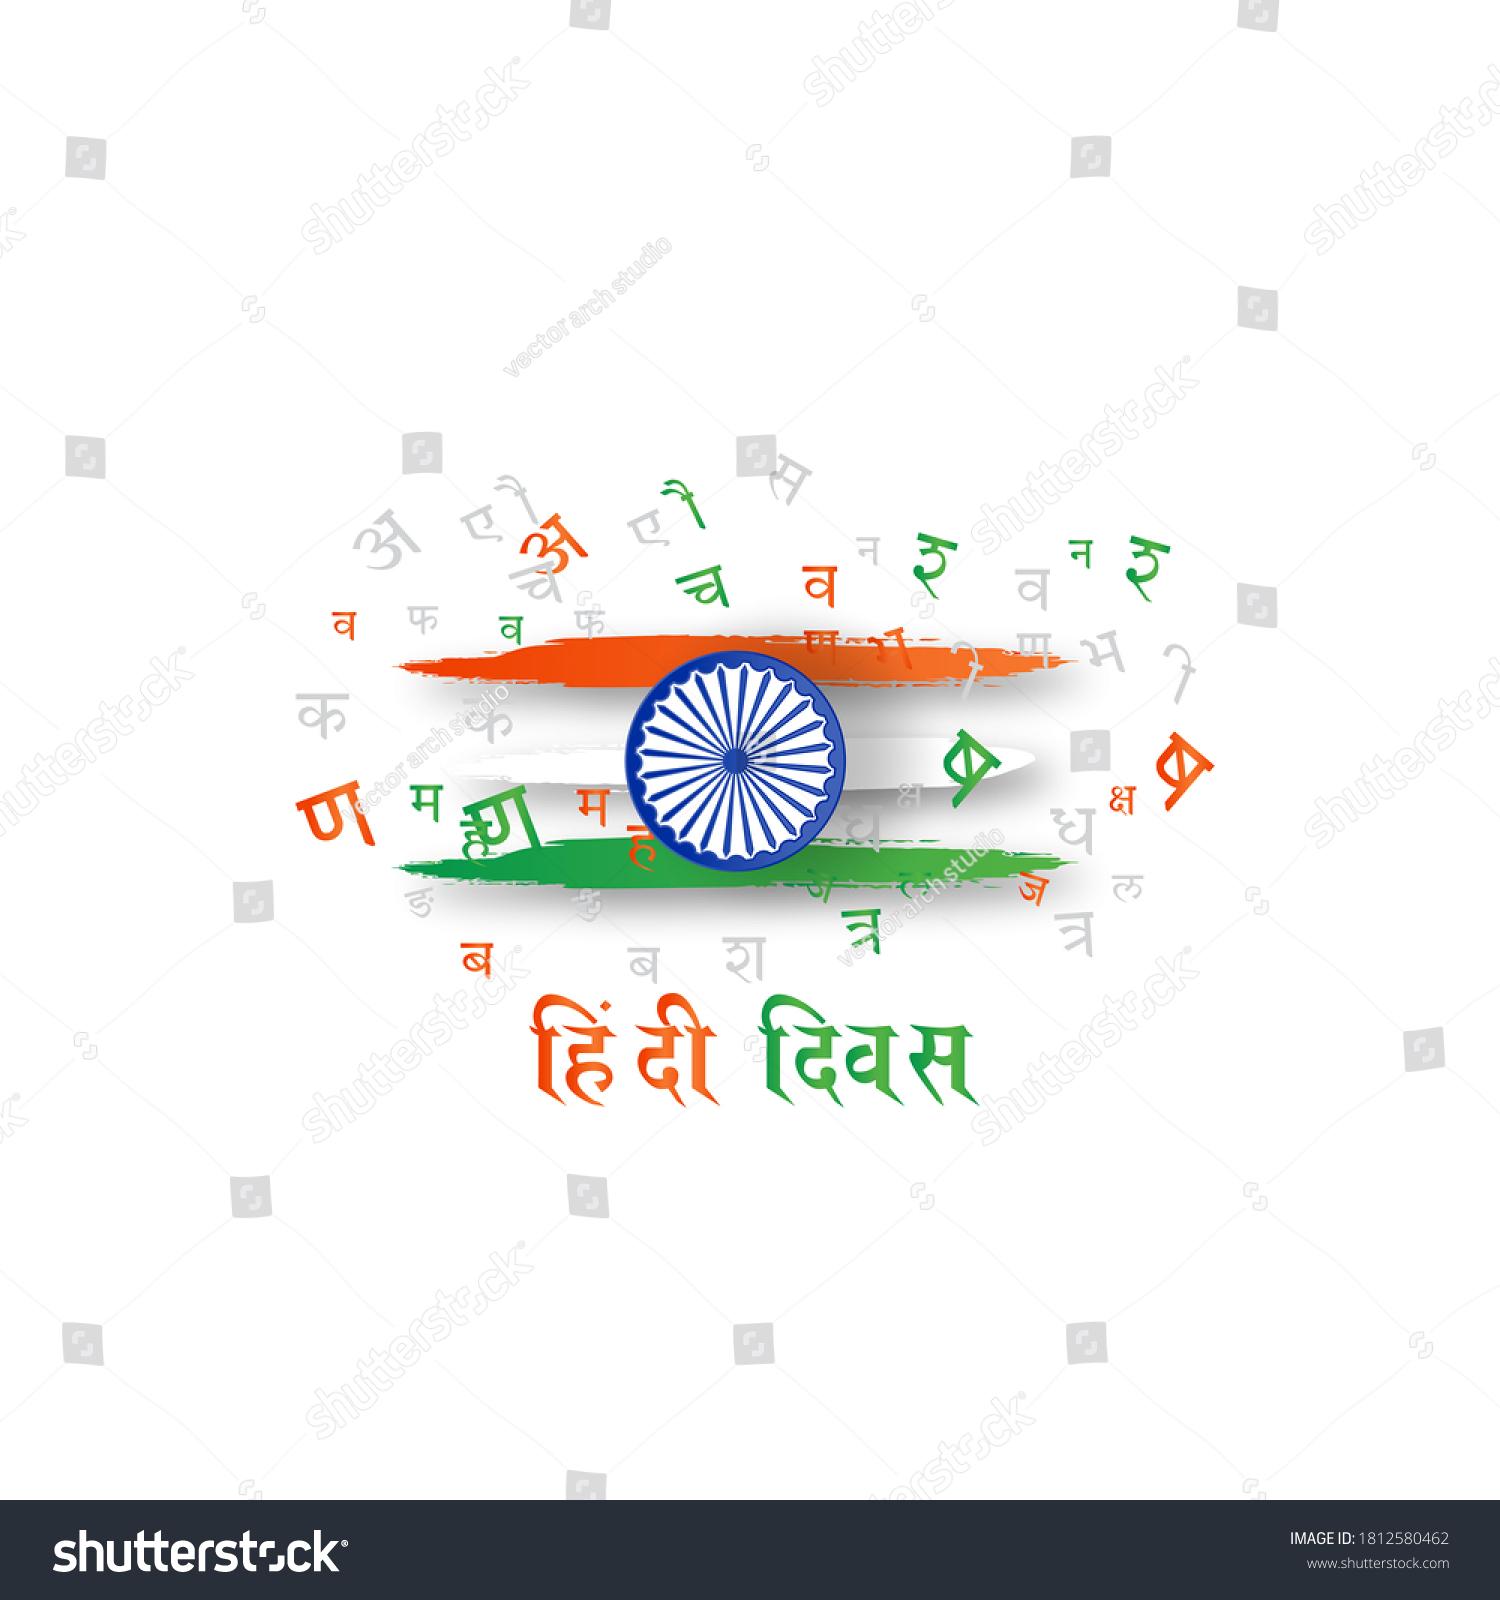 Hindi Diwas Hindi Meaning Hindi Dayindian Stock Vector Royalty Free 1812580462